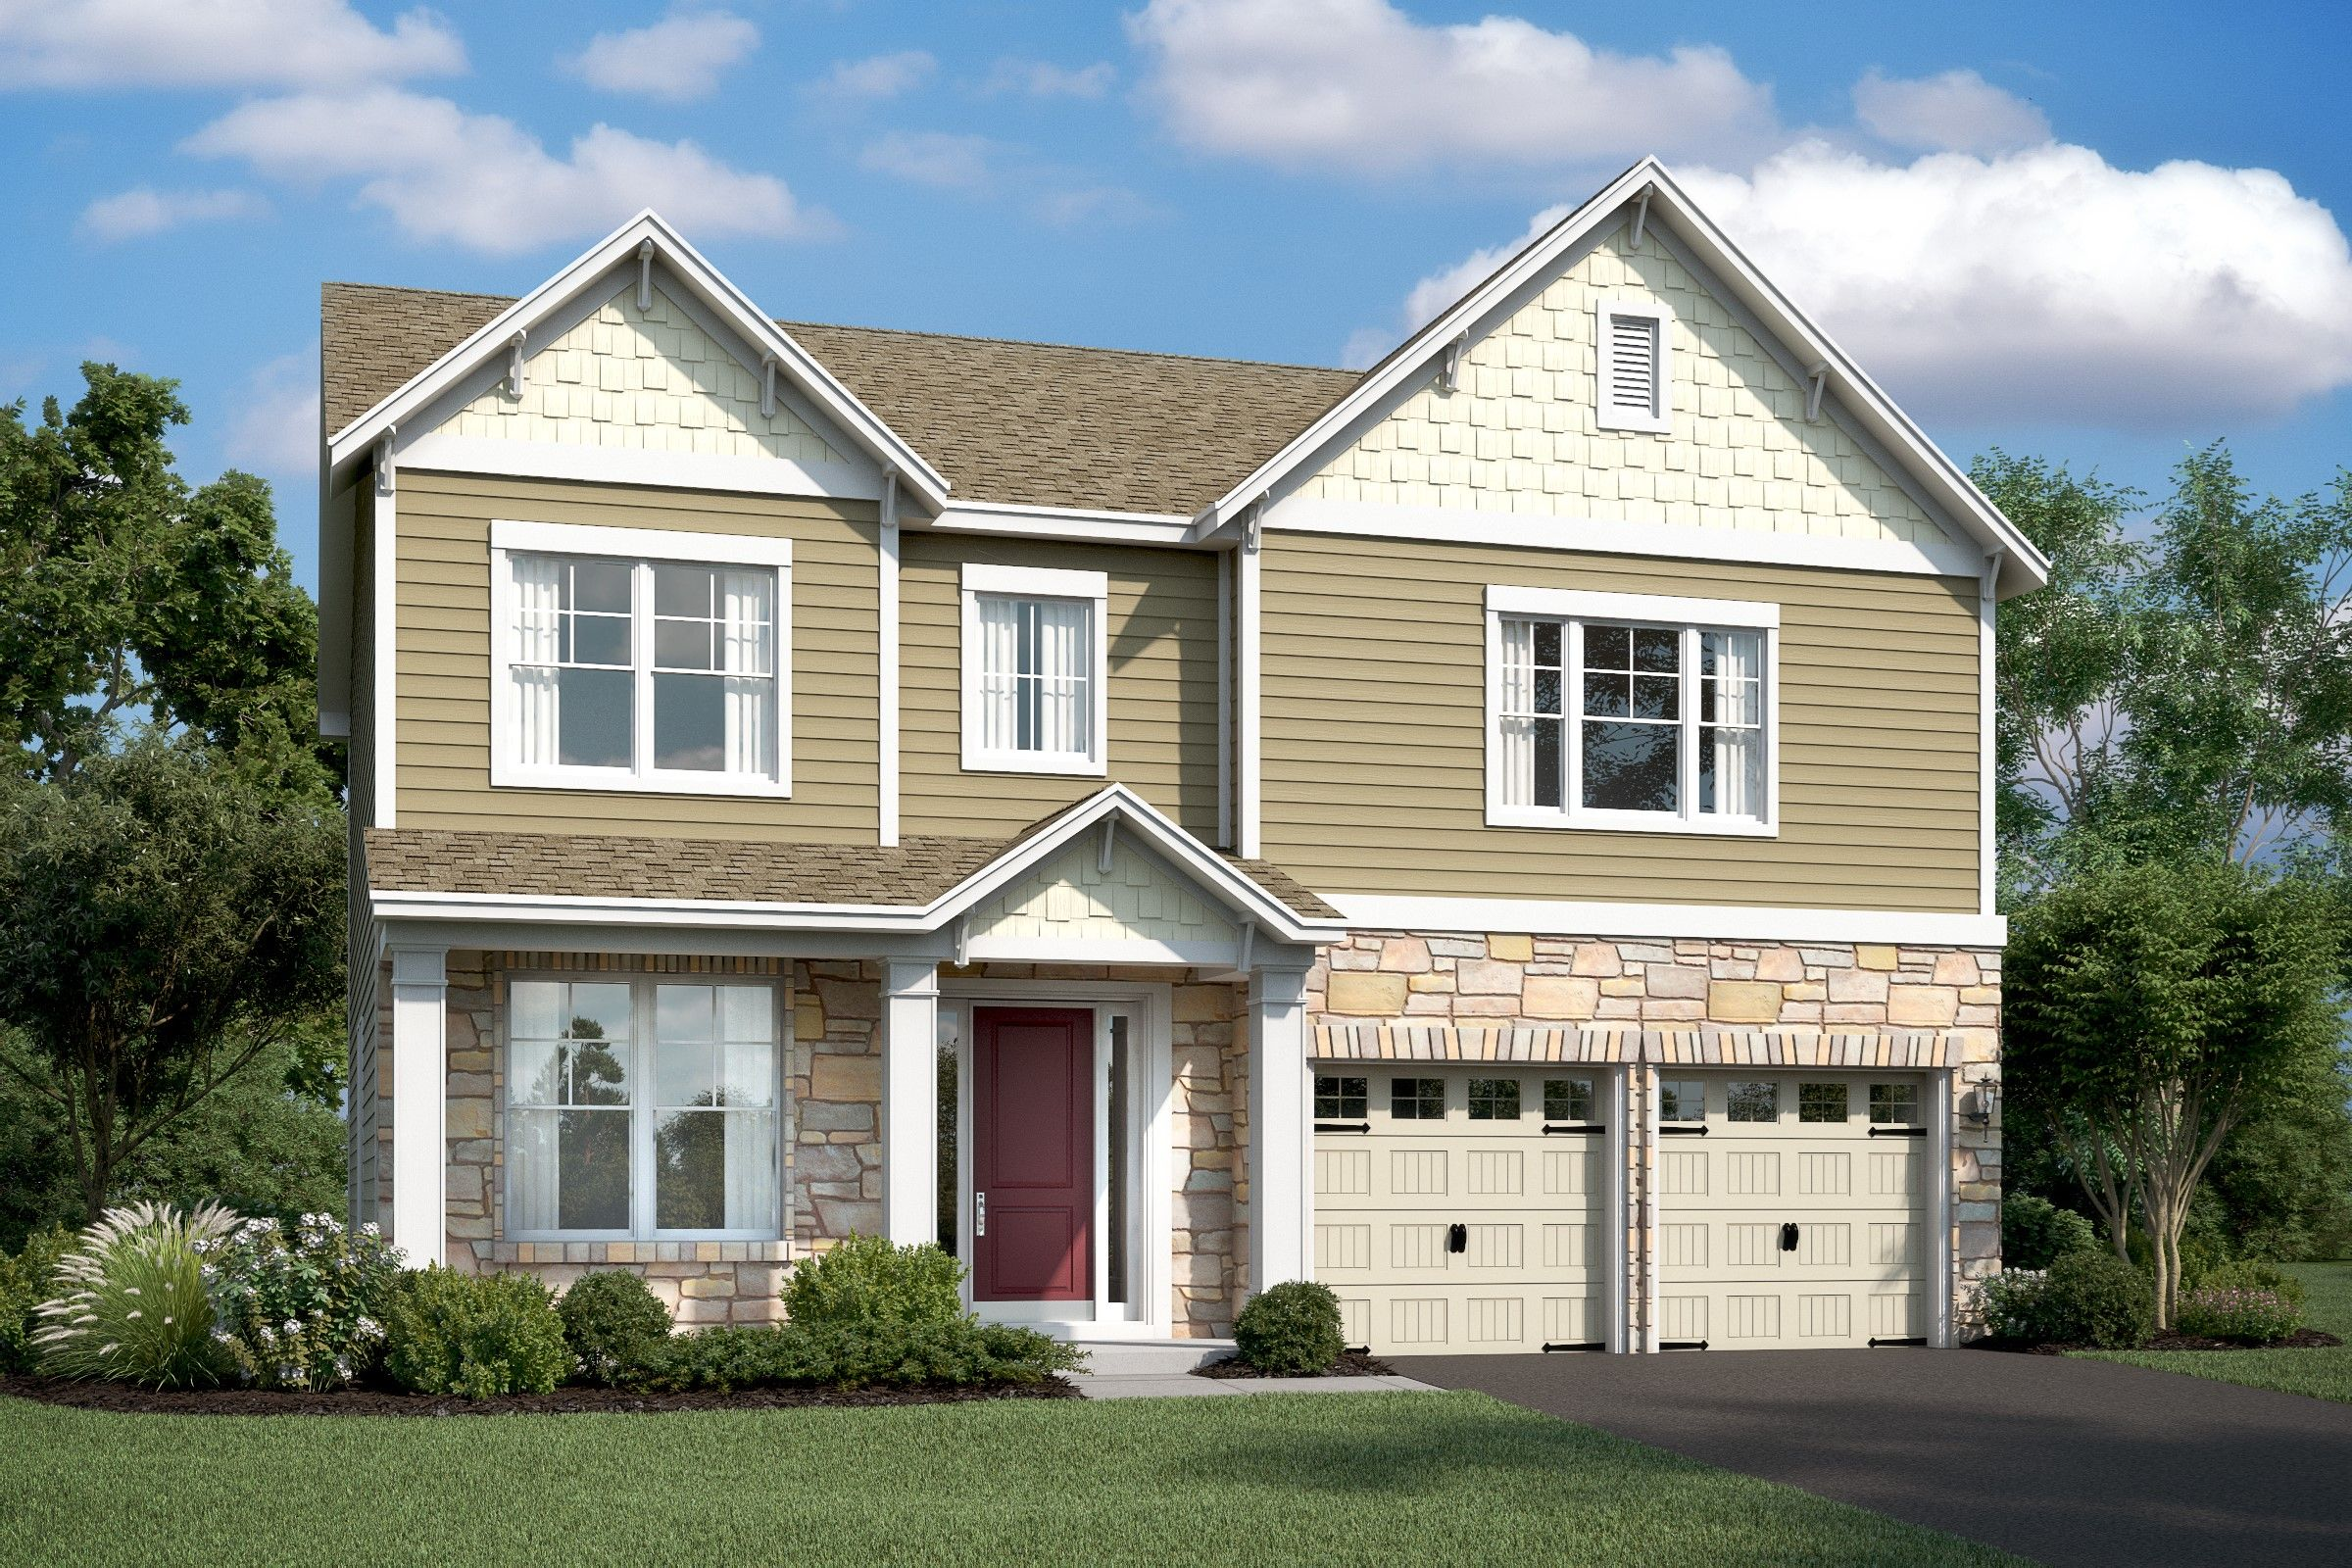 Single Family for Active at Eden Terrace - Wedgewood 110 Forest Avenue Catonsville, Maryland 21228 United States